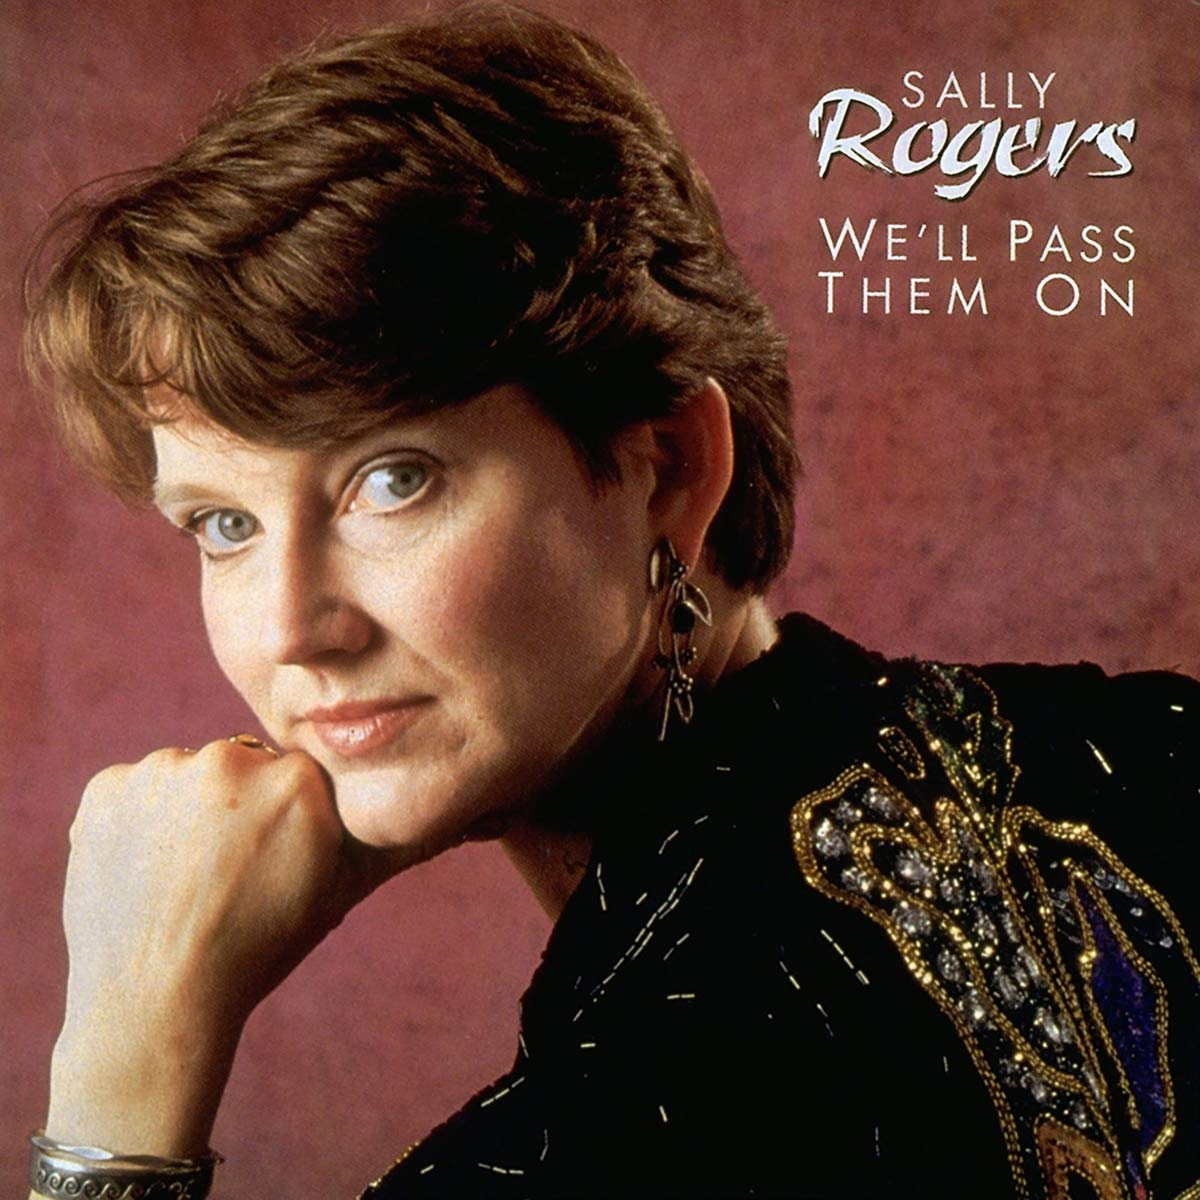 Sally Rogers - Well Pass Them On (1995) [FLAC] Download